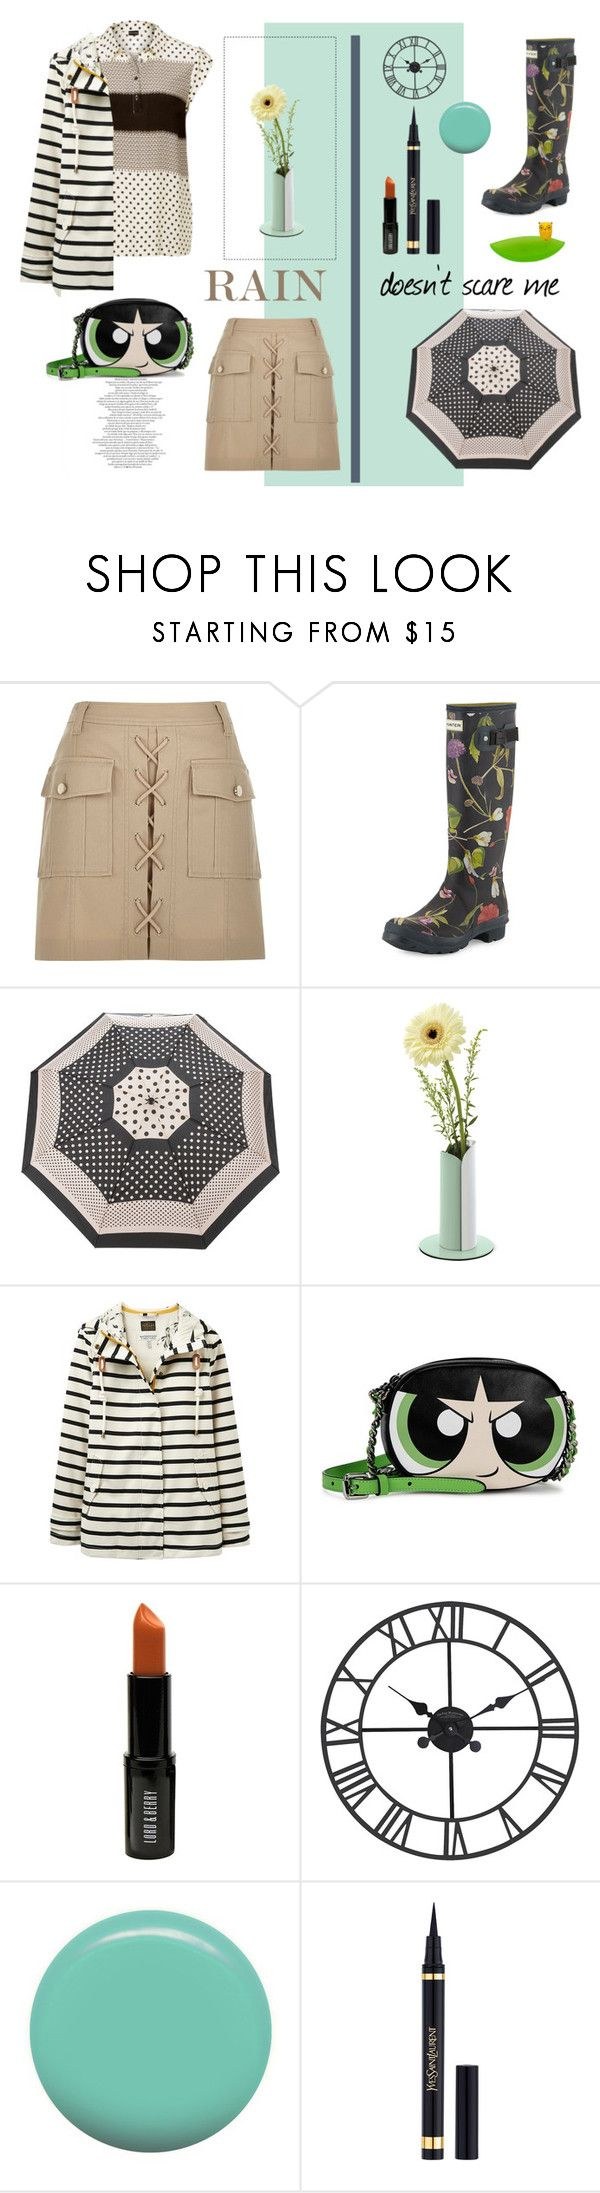 """Rainy days"" by pinfi on Polyvore featuring River Island, Hunter, Marc by Marc Jacobs, Dot & Bo, Joules, Moschino, Lord & Berry, Jin Soon and Creative Bath Products"